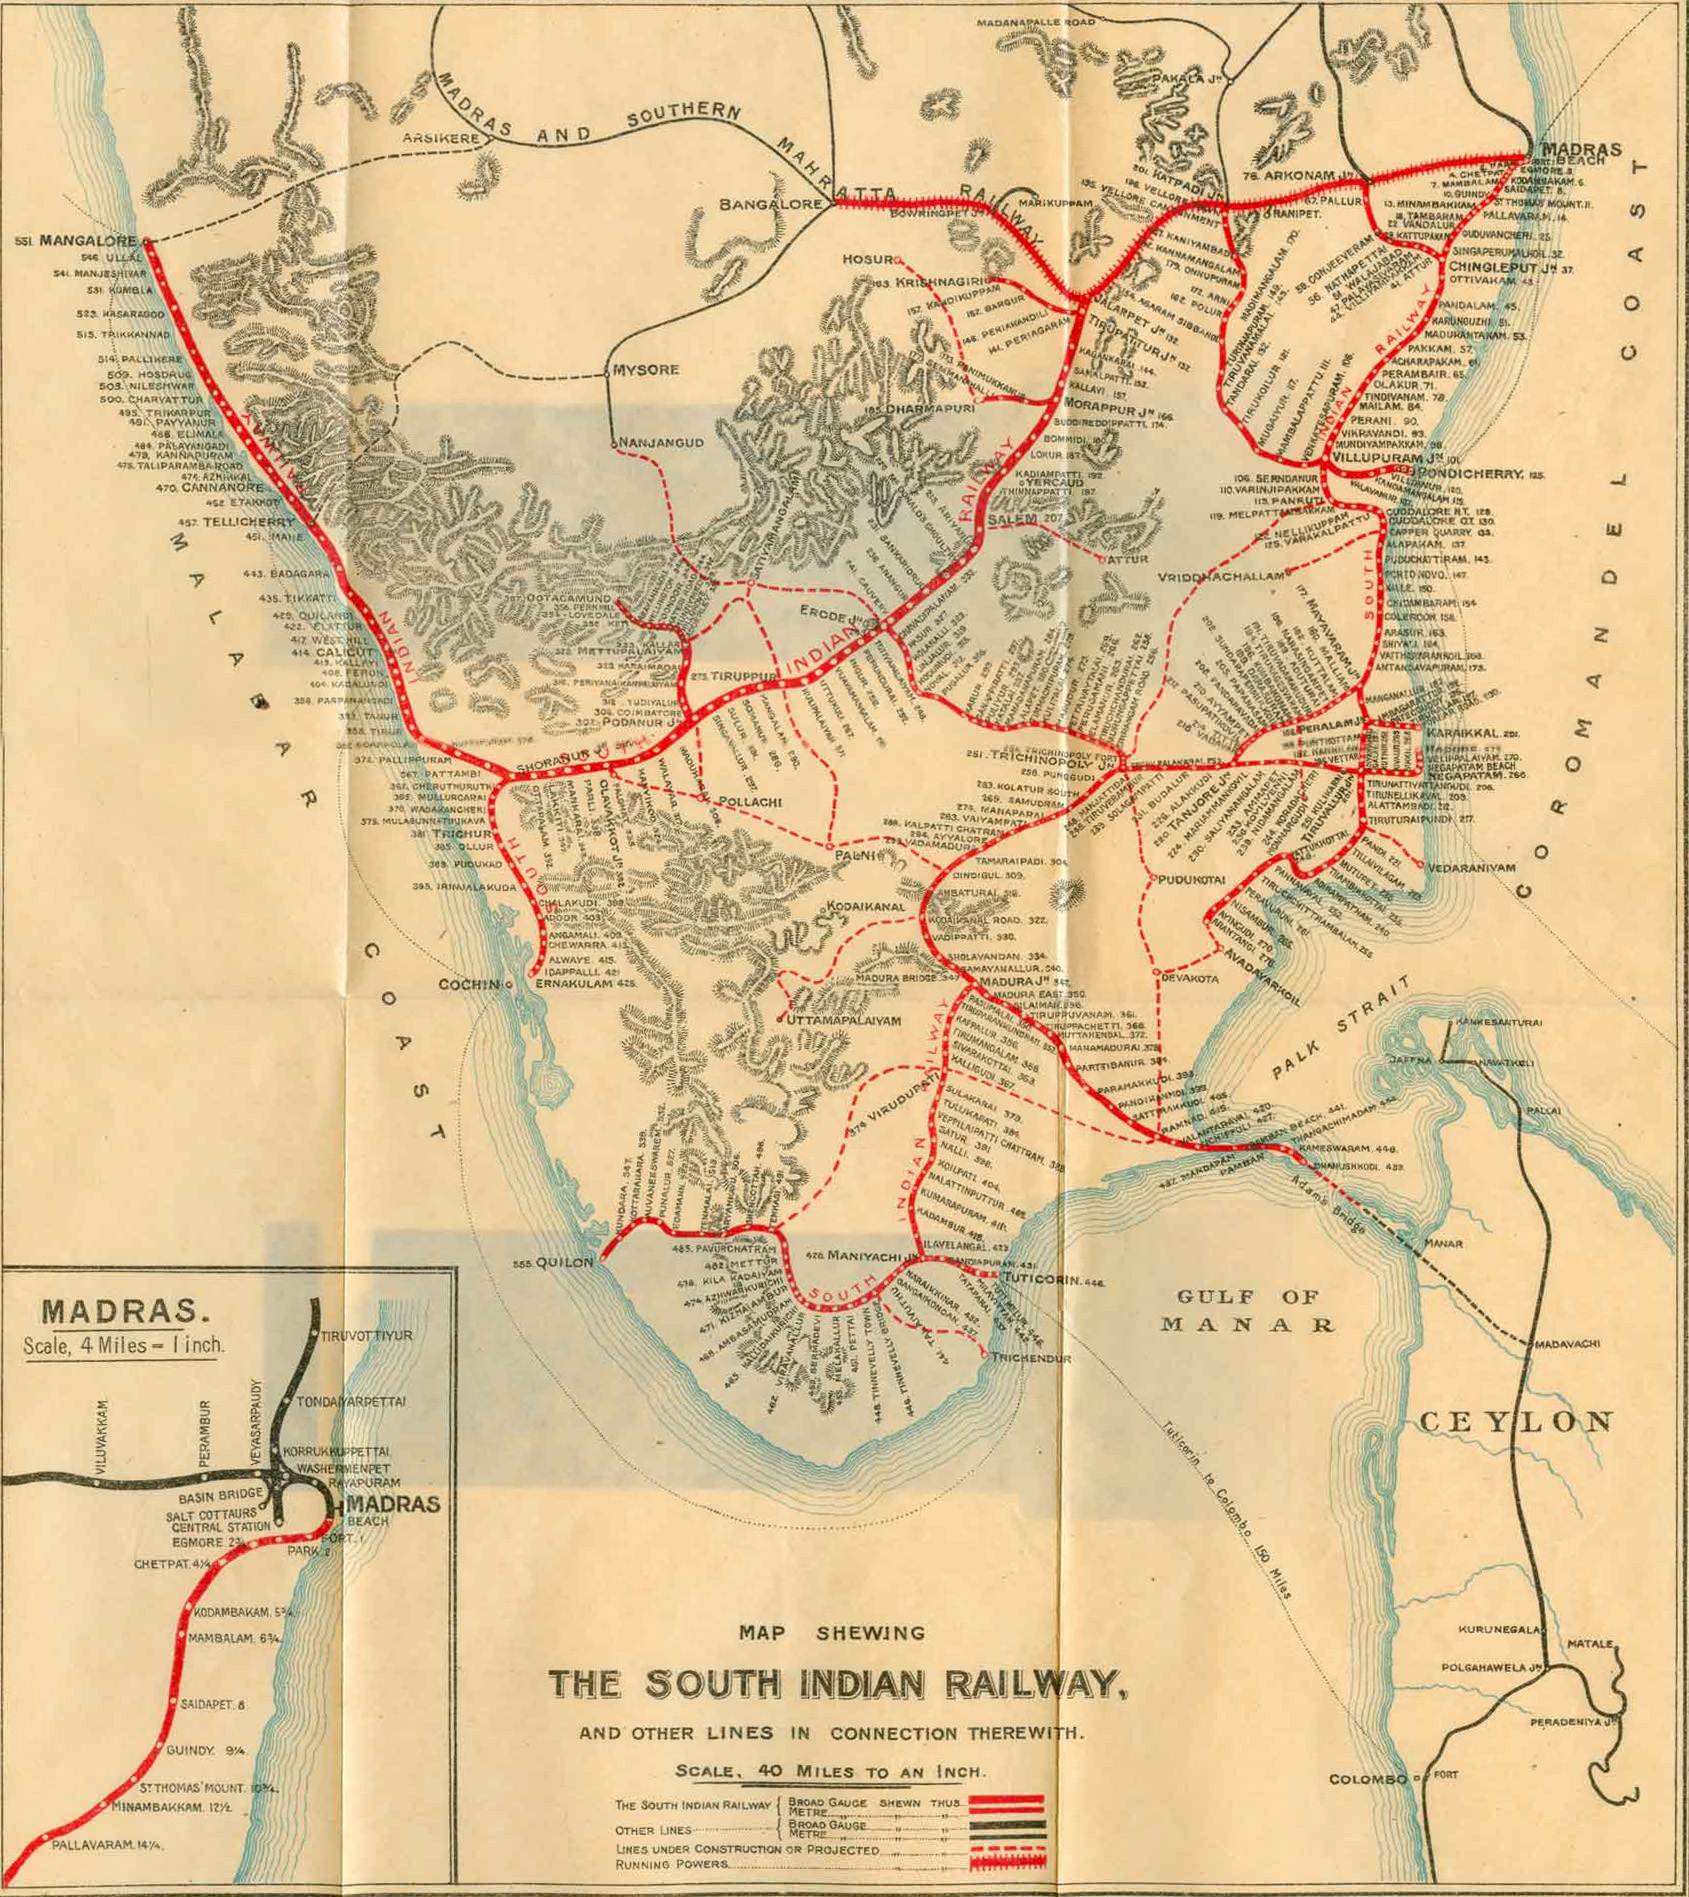 Southern Railway Map Of India.File 60the South Indian Railway Jpg Wikimedia Commons